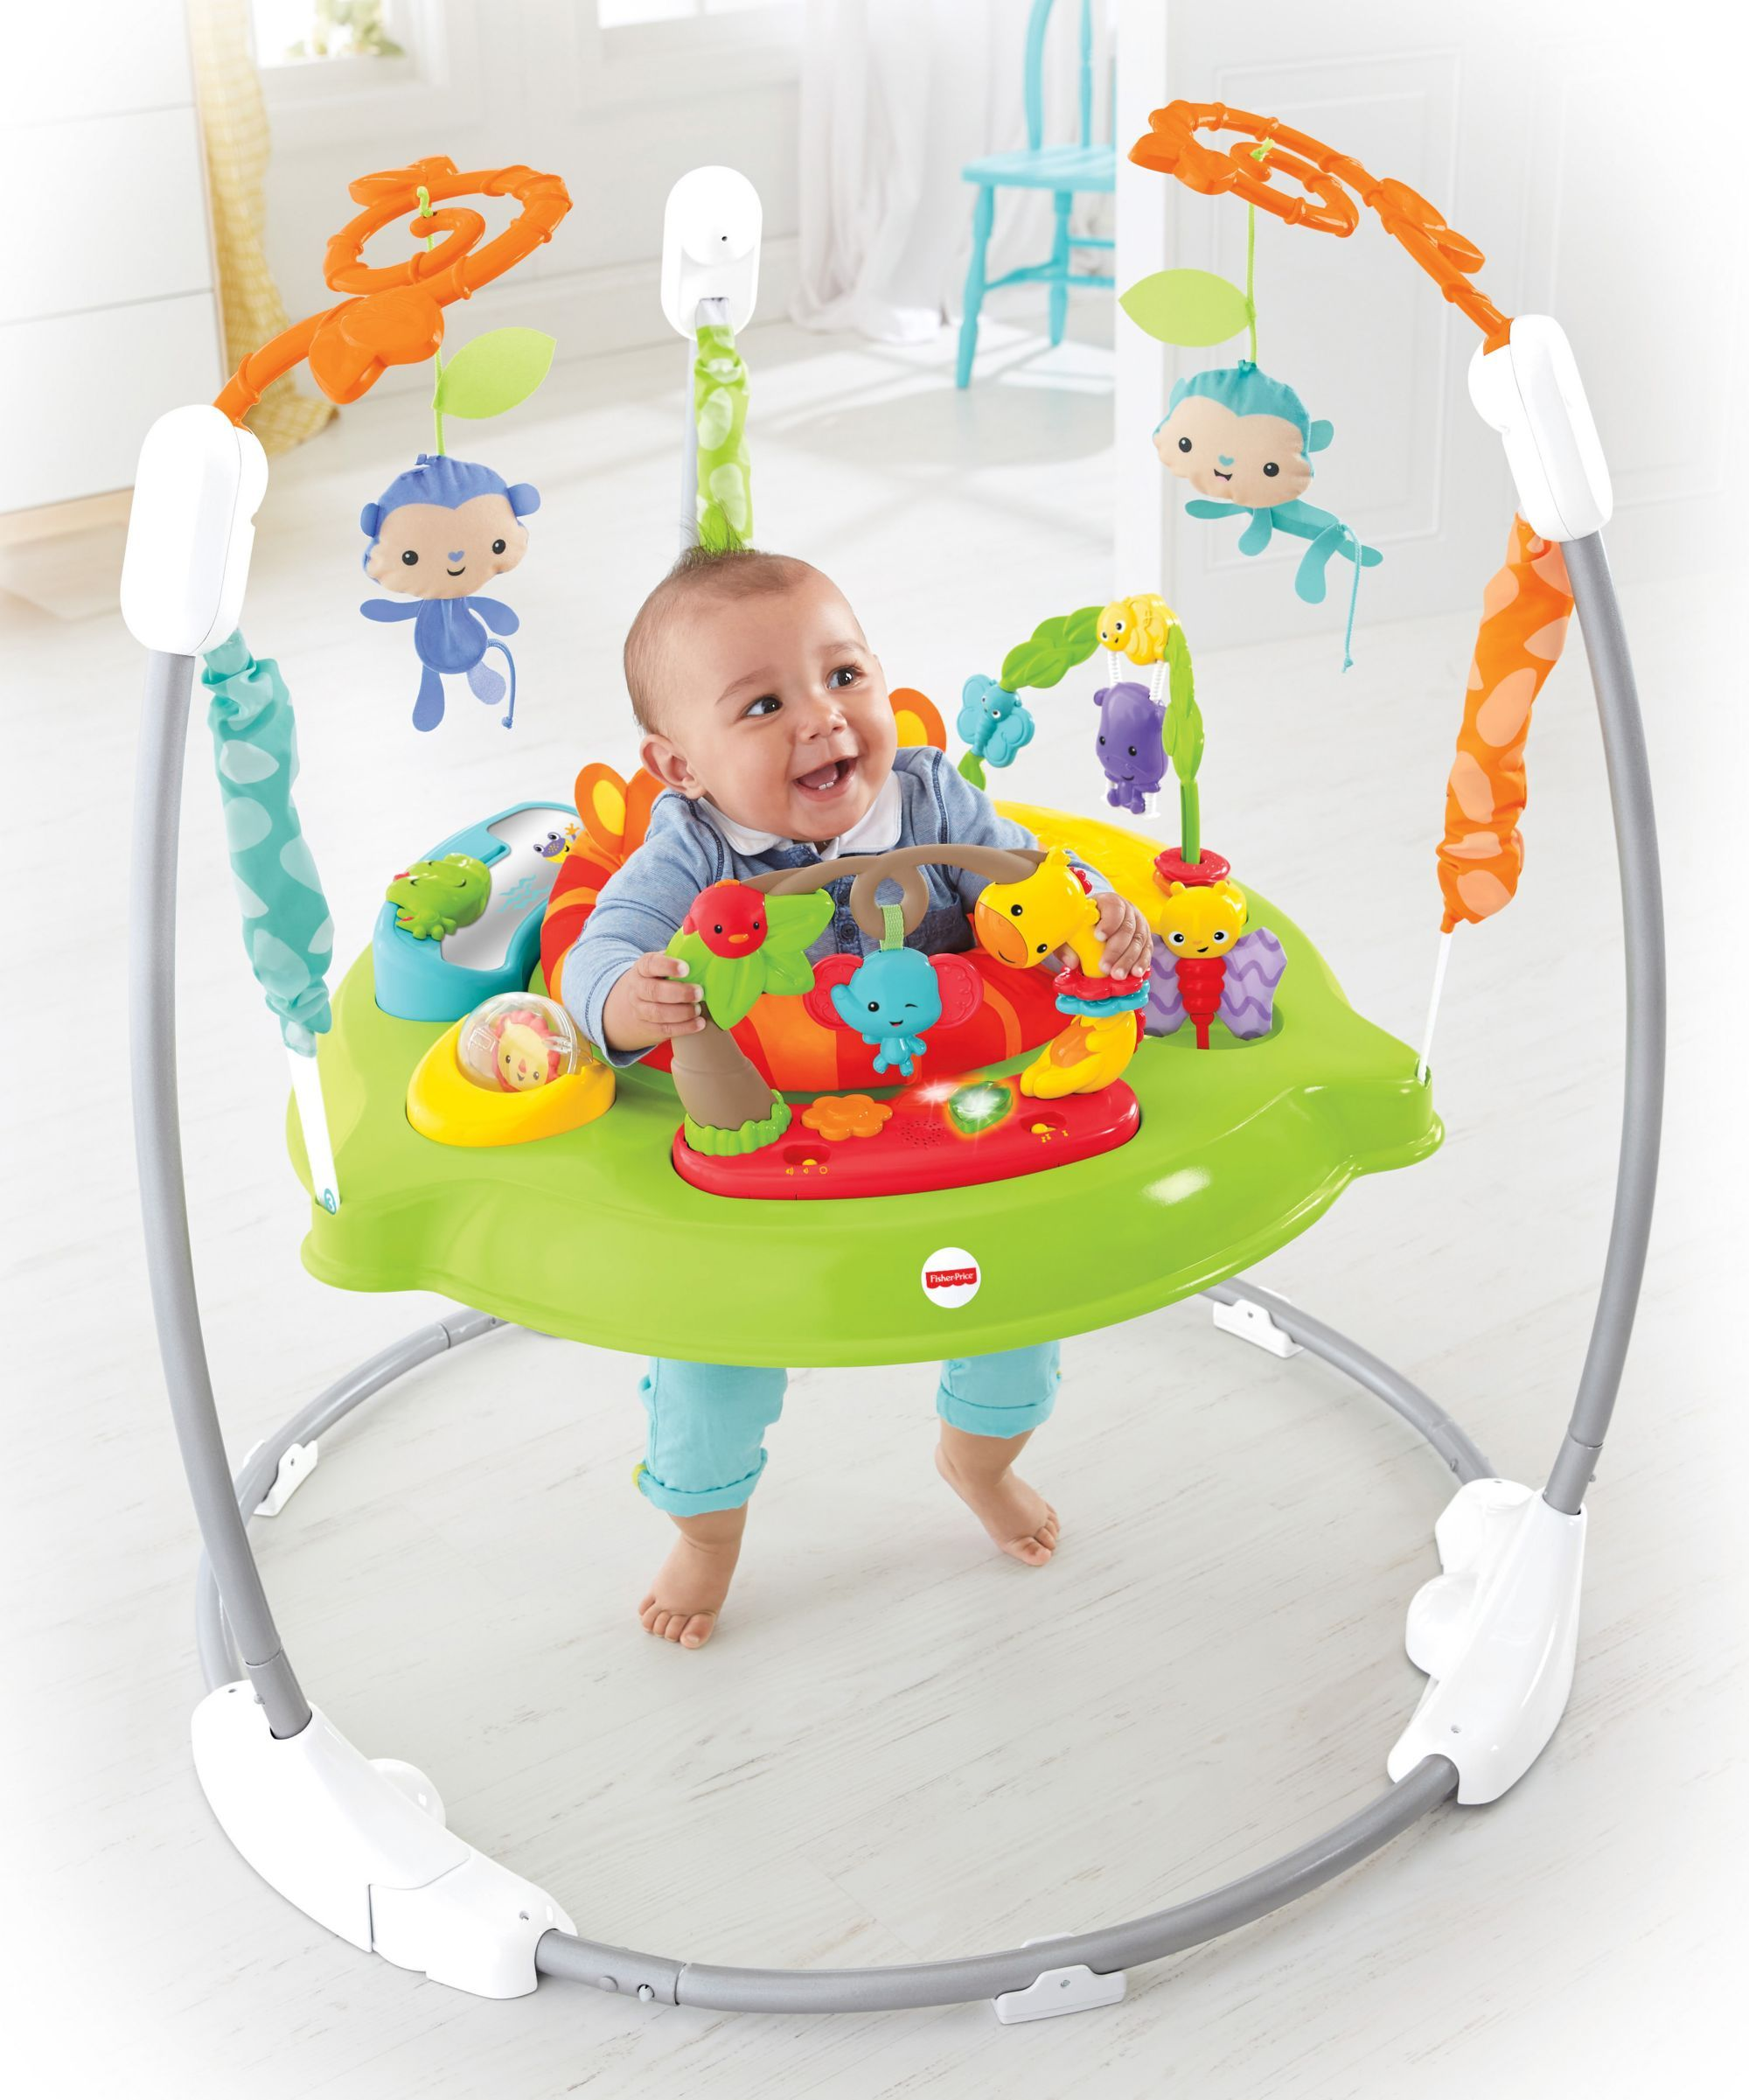 a98fcae41 BOUGHT   Fisher Price Rainforest Jumperoo -Roaring (toys r us ...